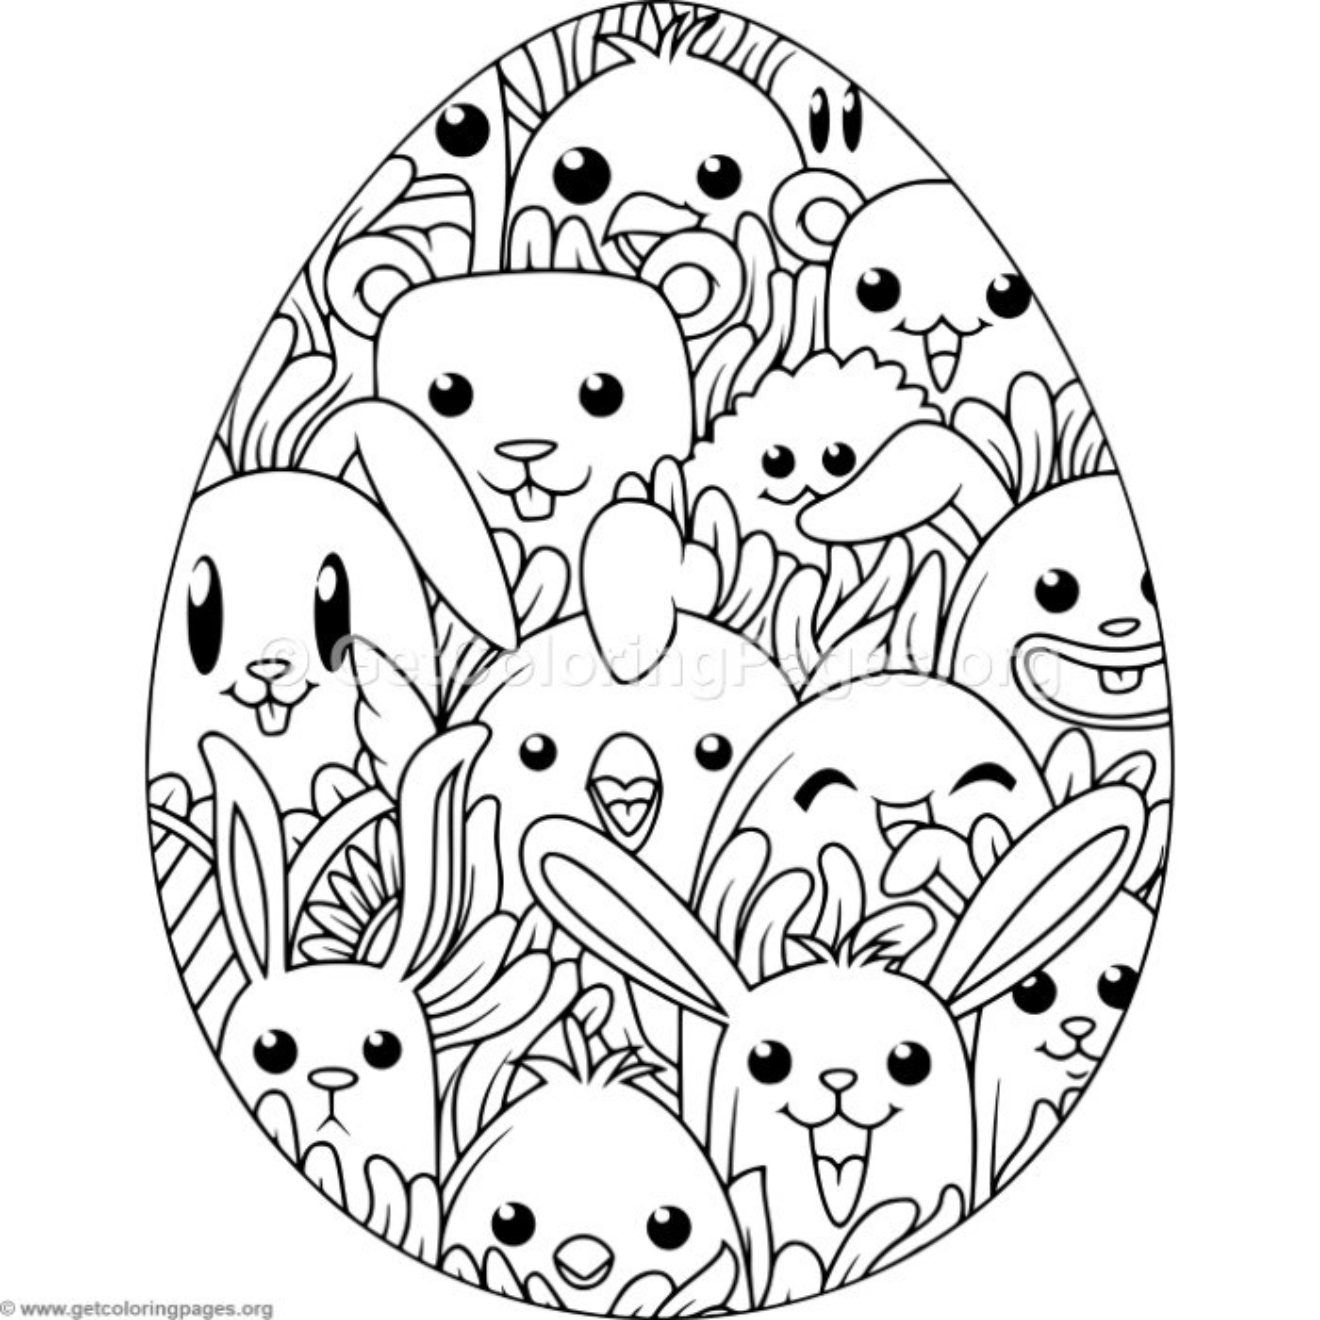 Happy Animals Easter Egg Coloring Pages GetColoringPages